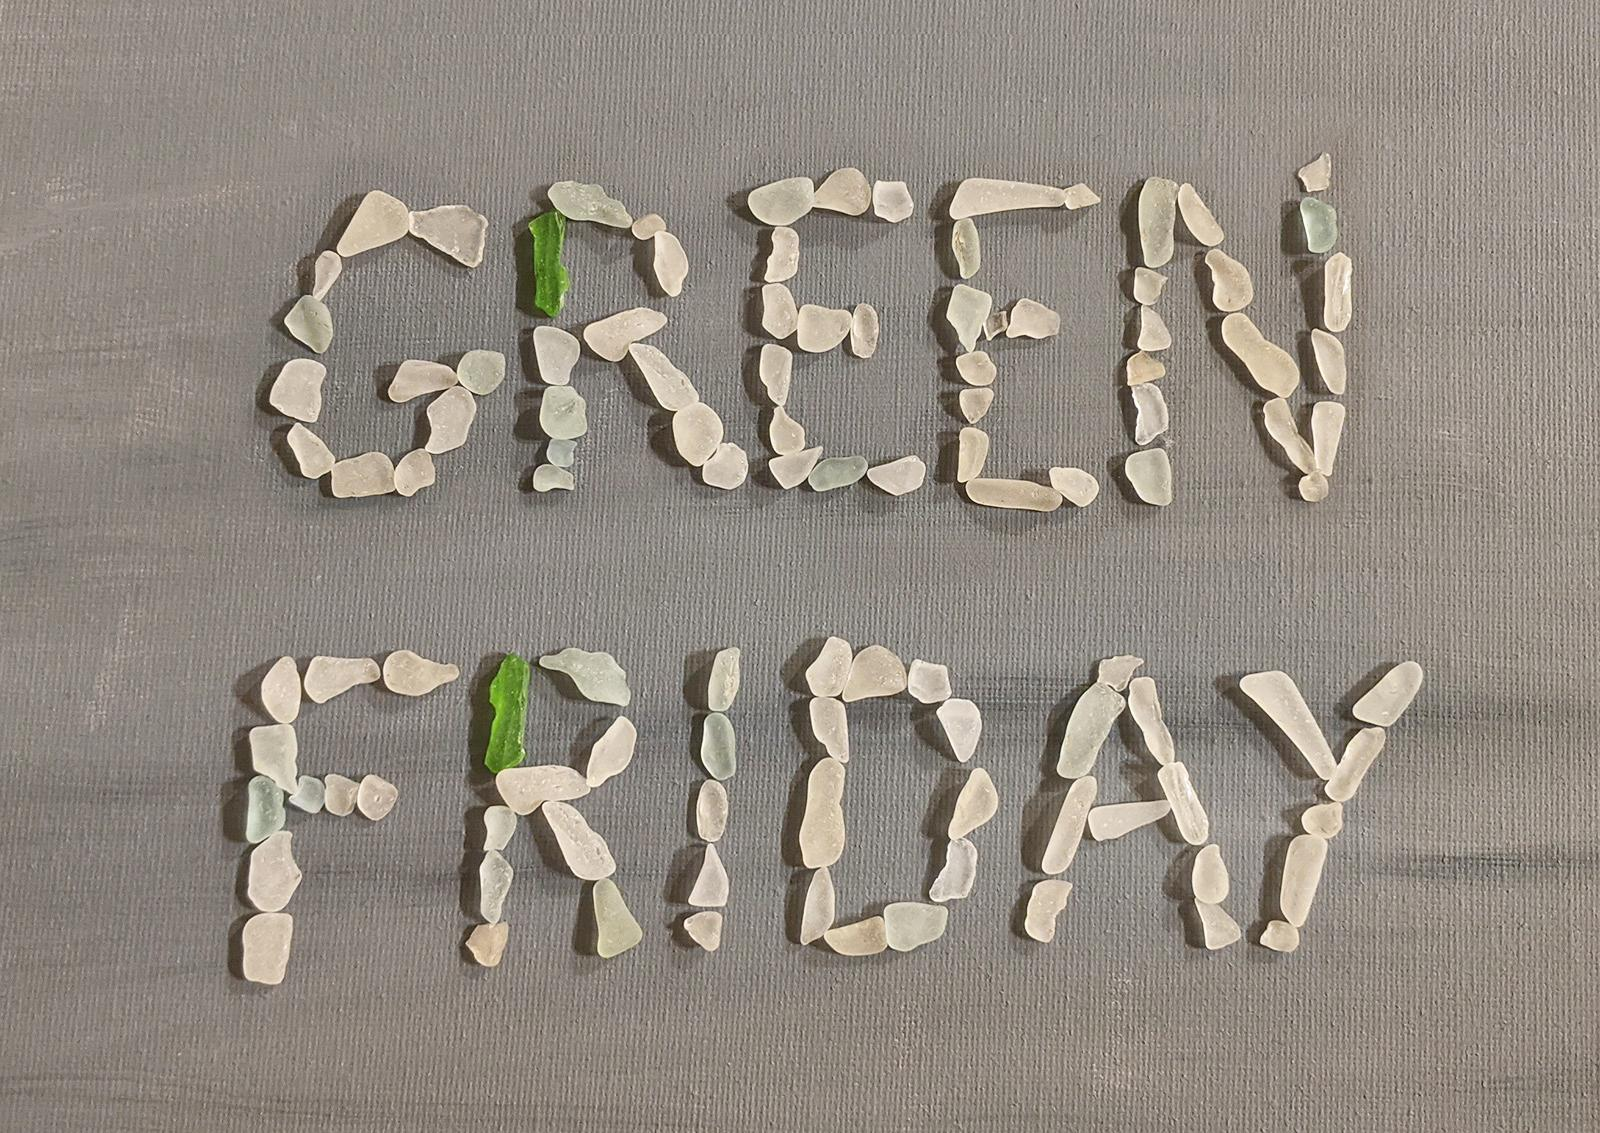 Green Friday written in glass pebbles found on beach